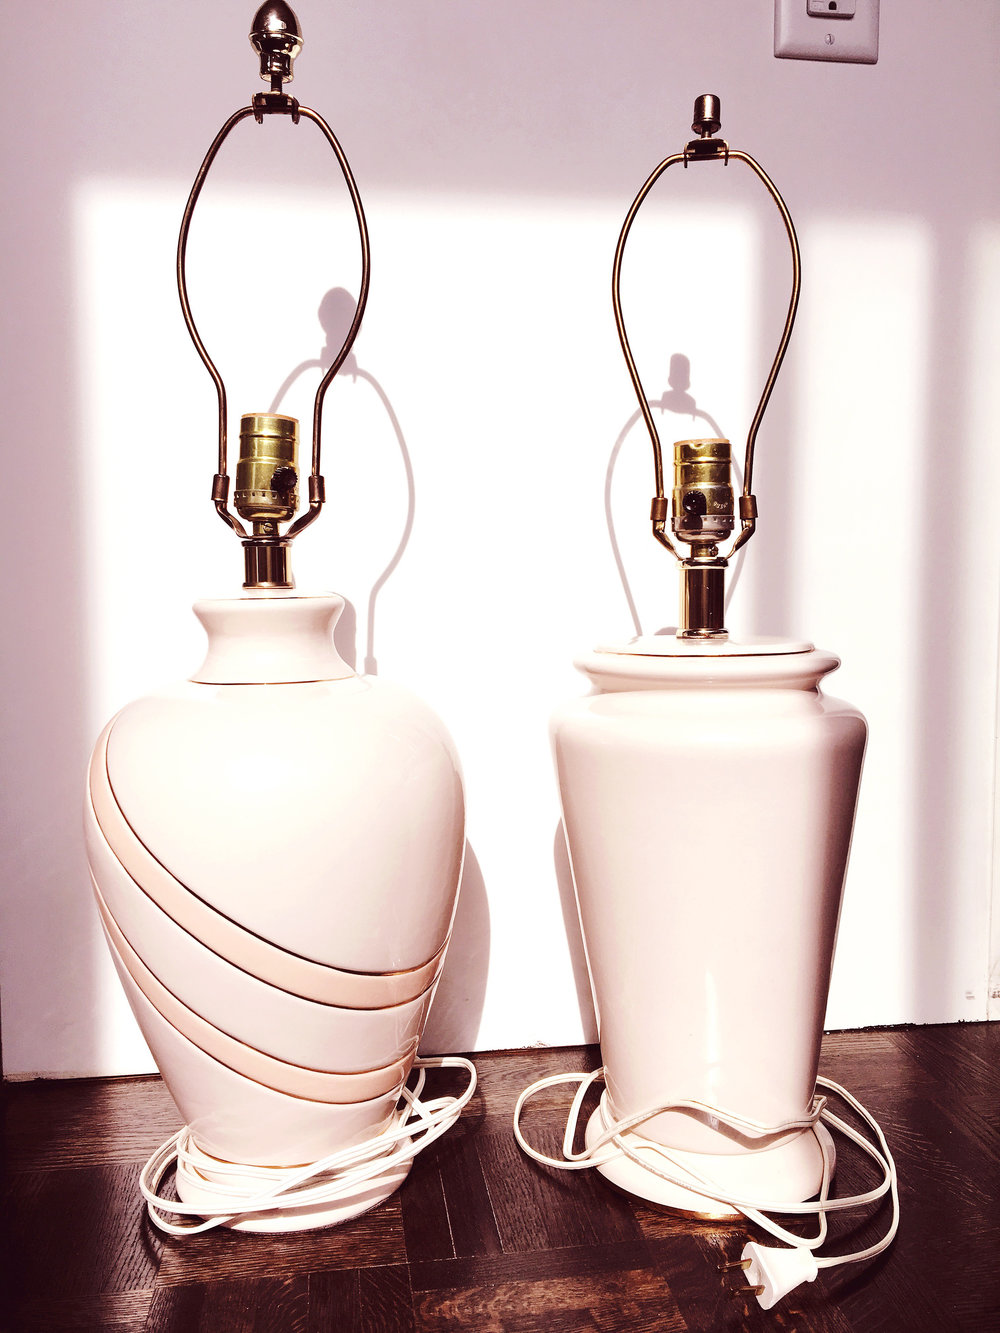 THE FUNKY FRESH / VINTAGE LAMPS BEFORE